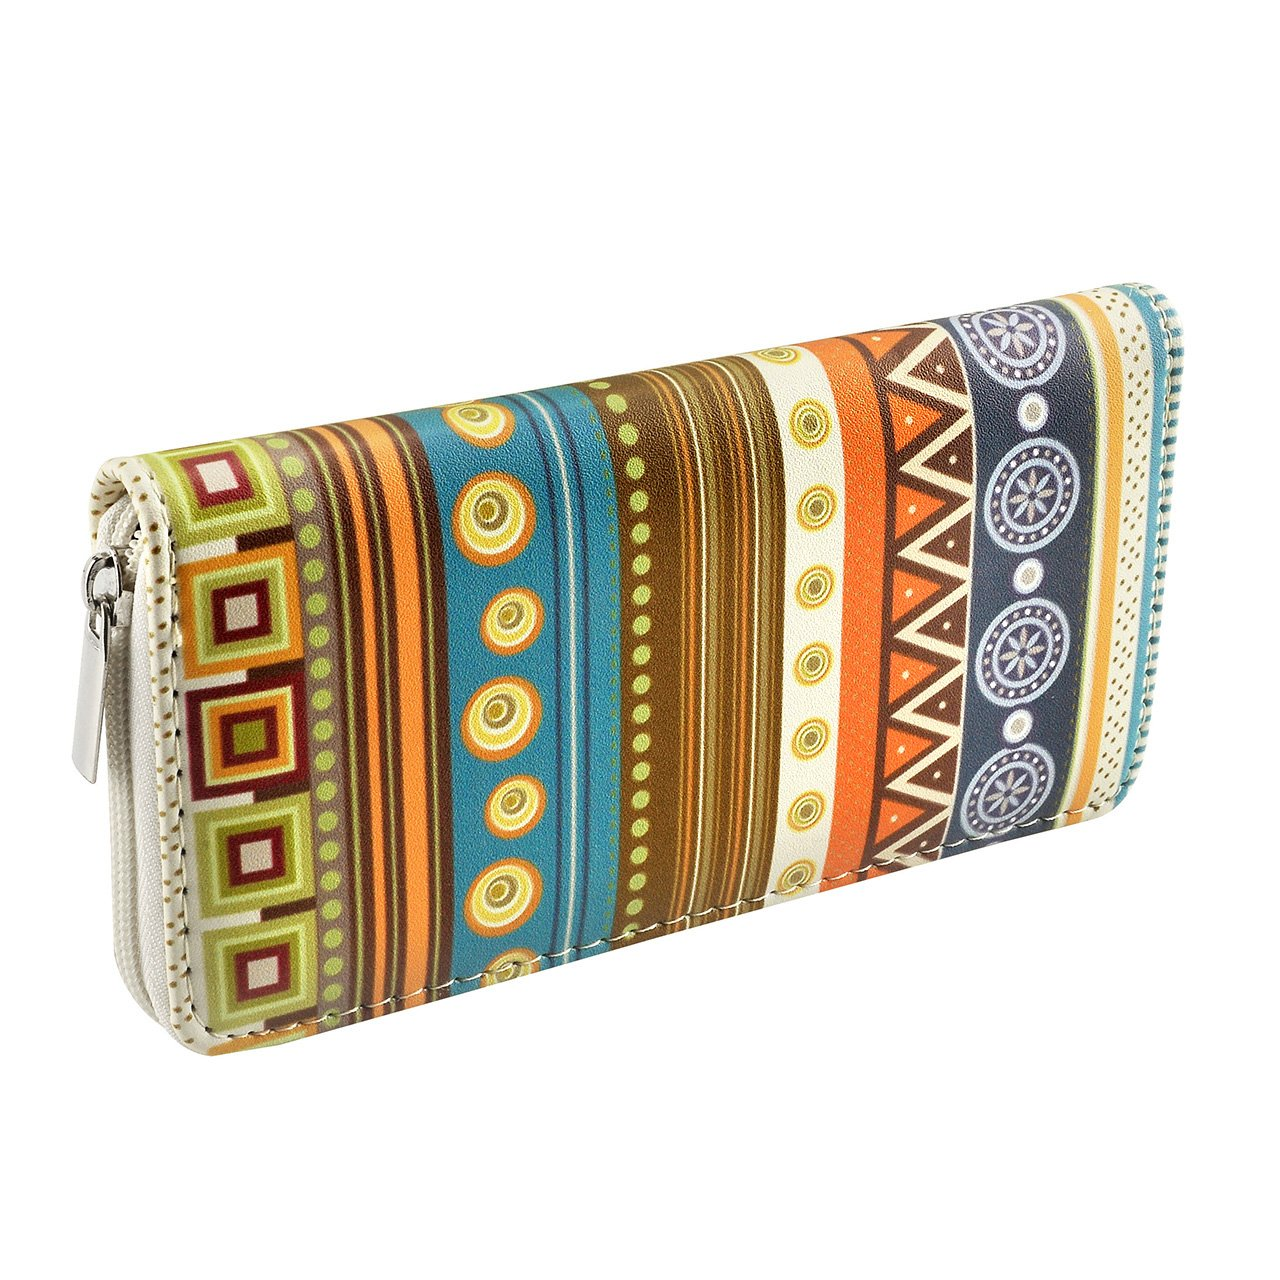 CHIC DIARY Women Wallet PU Leather Long Clutch Purse with Zipper Closure (#Geometrical pattern)